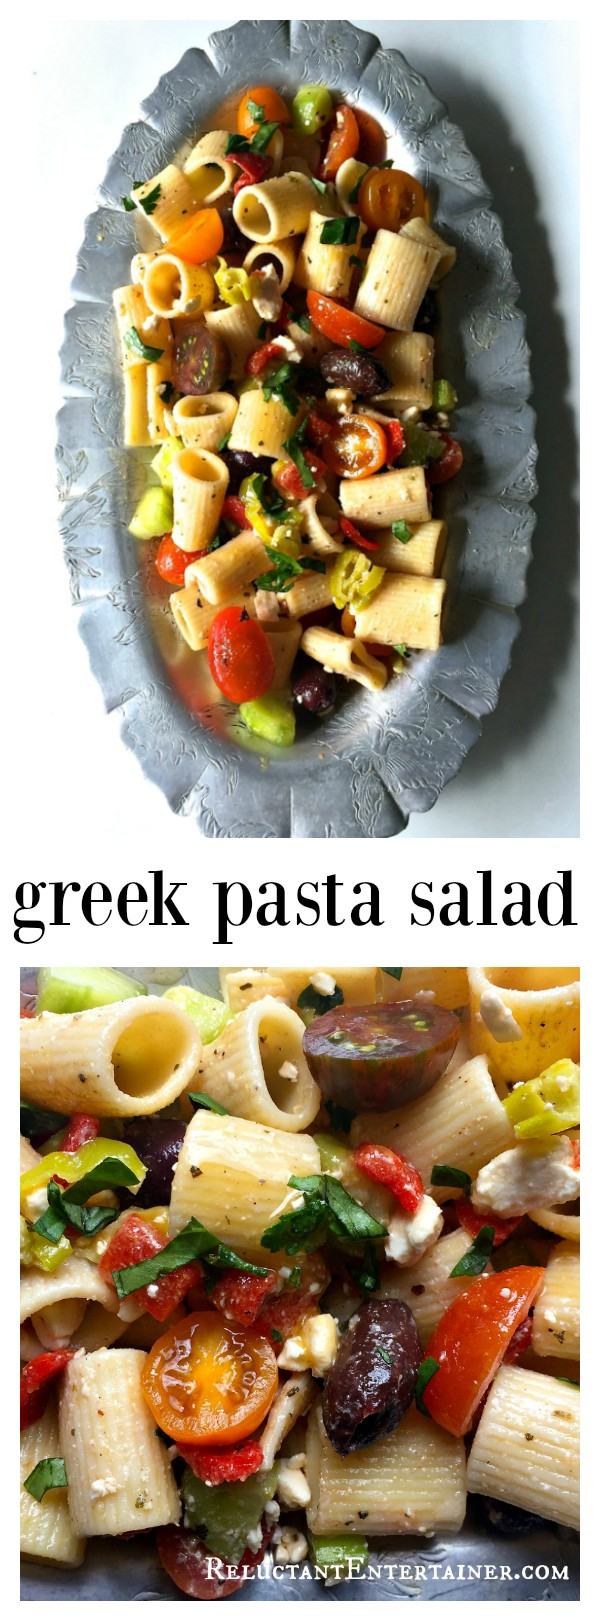 Make This Greek Pasta Salad Ahead Of Time And Refrigerate Up To 24 Hours For Delicious